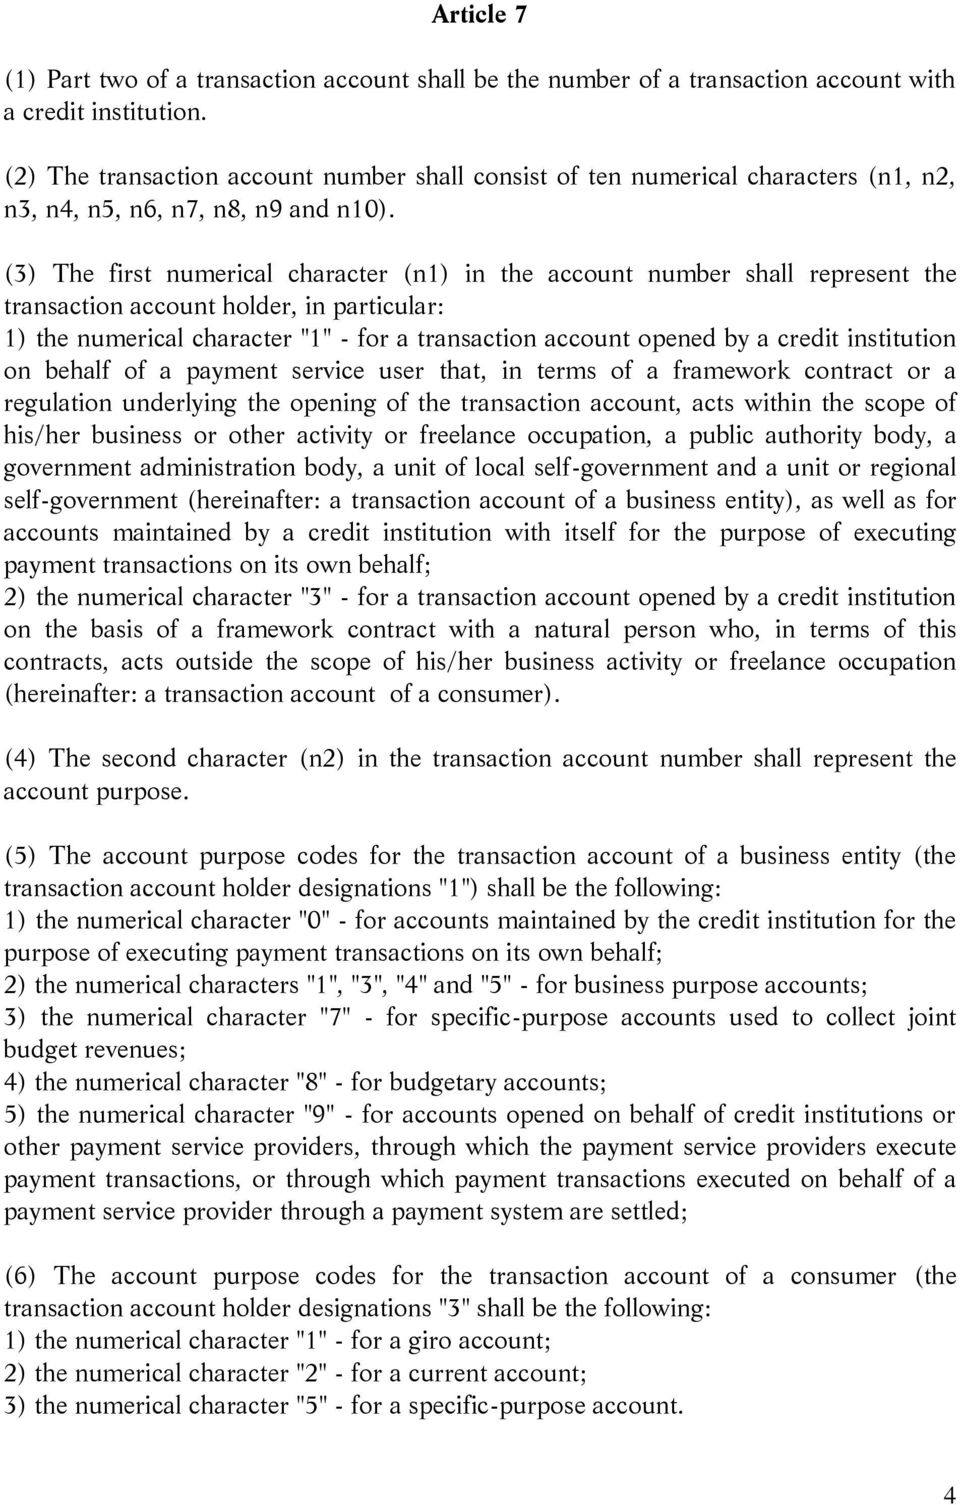 "(3) The first numerical character (n1) in the account number shall represent the transaction account holder, in particular: 1) the numerical character ""1"" - for a transaction account opened by a"